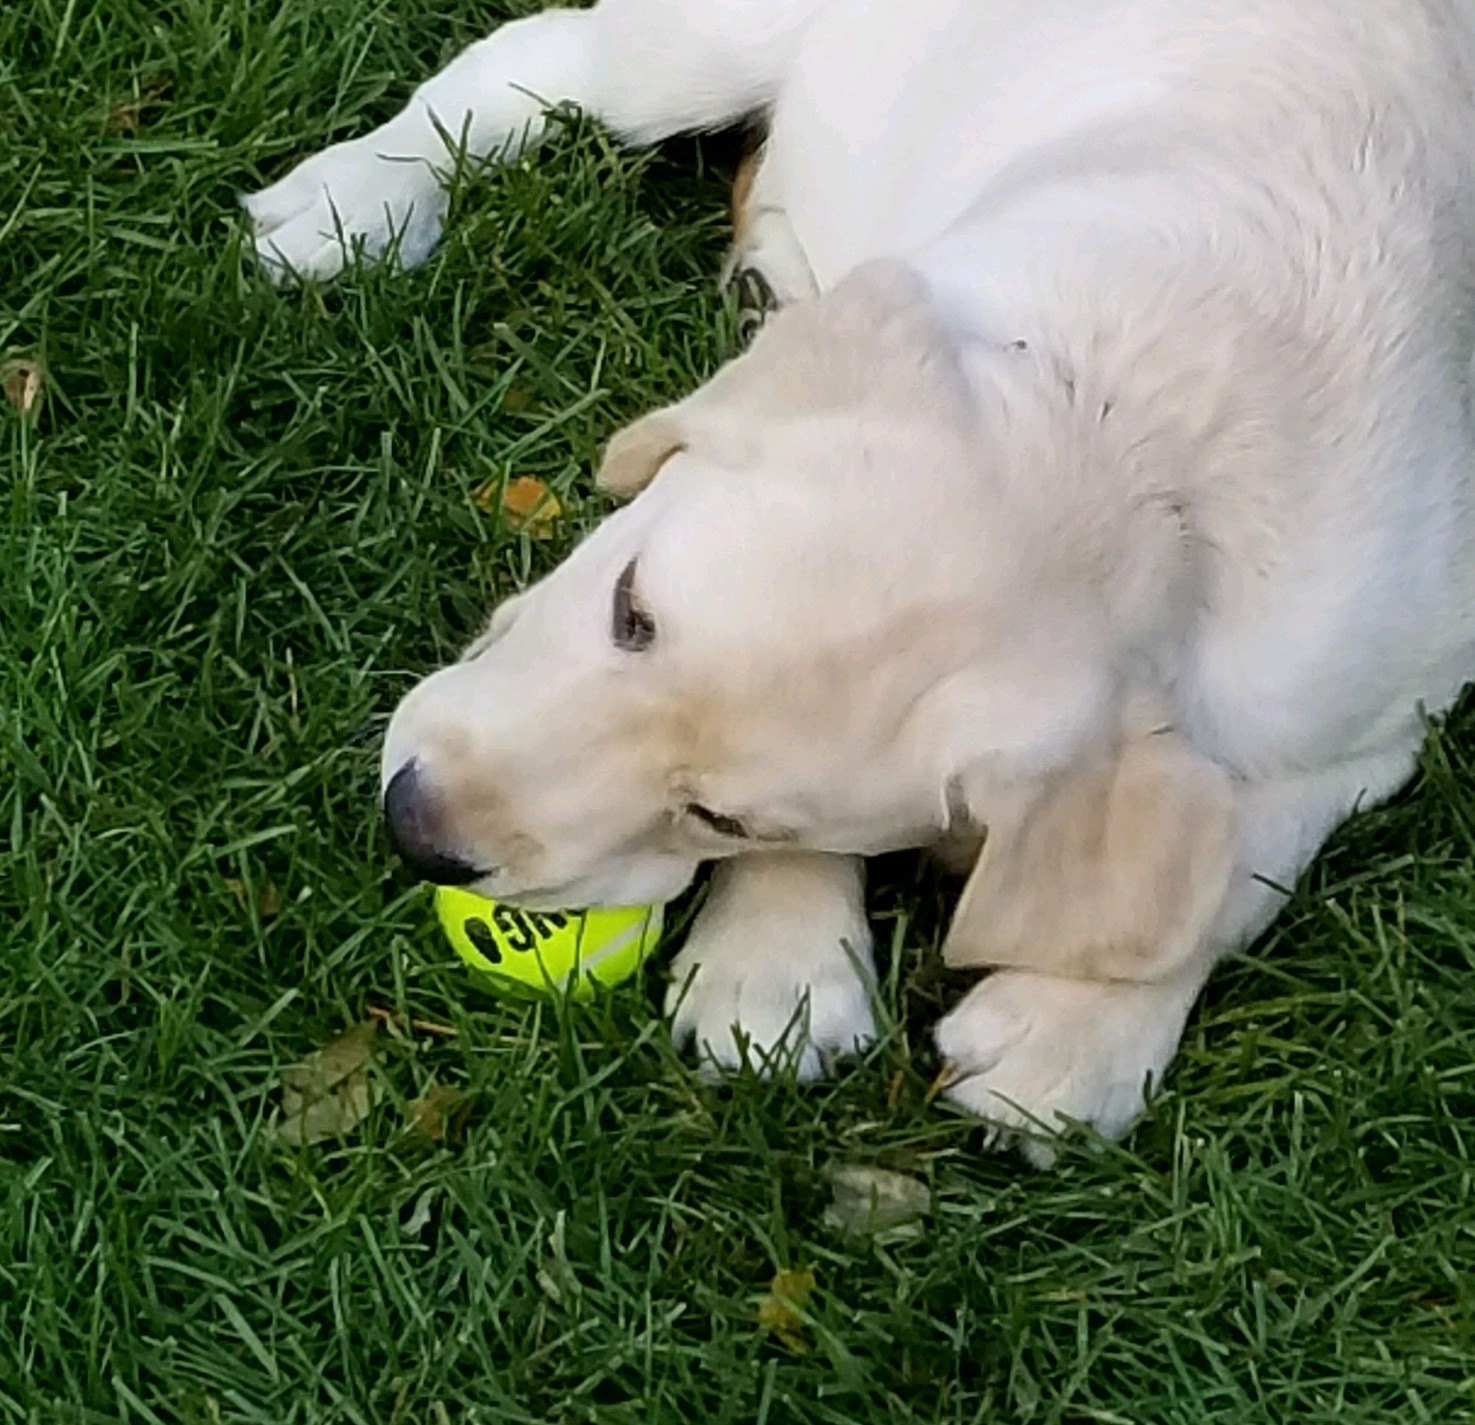 Labrador retriever in grass with tennis ball